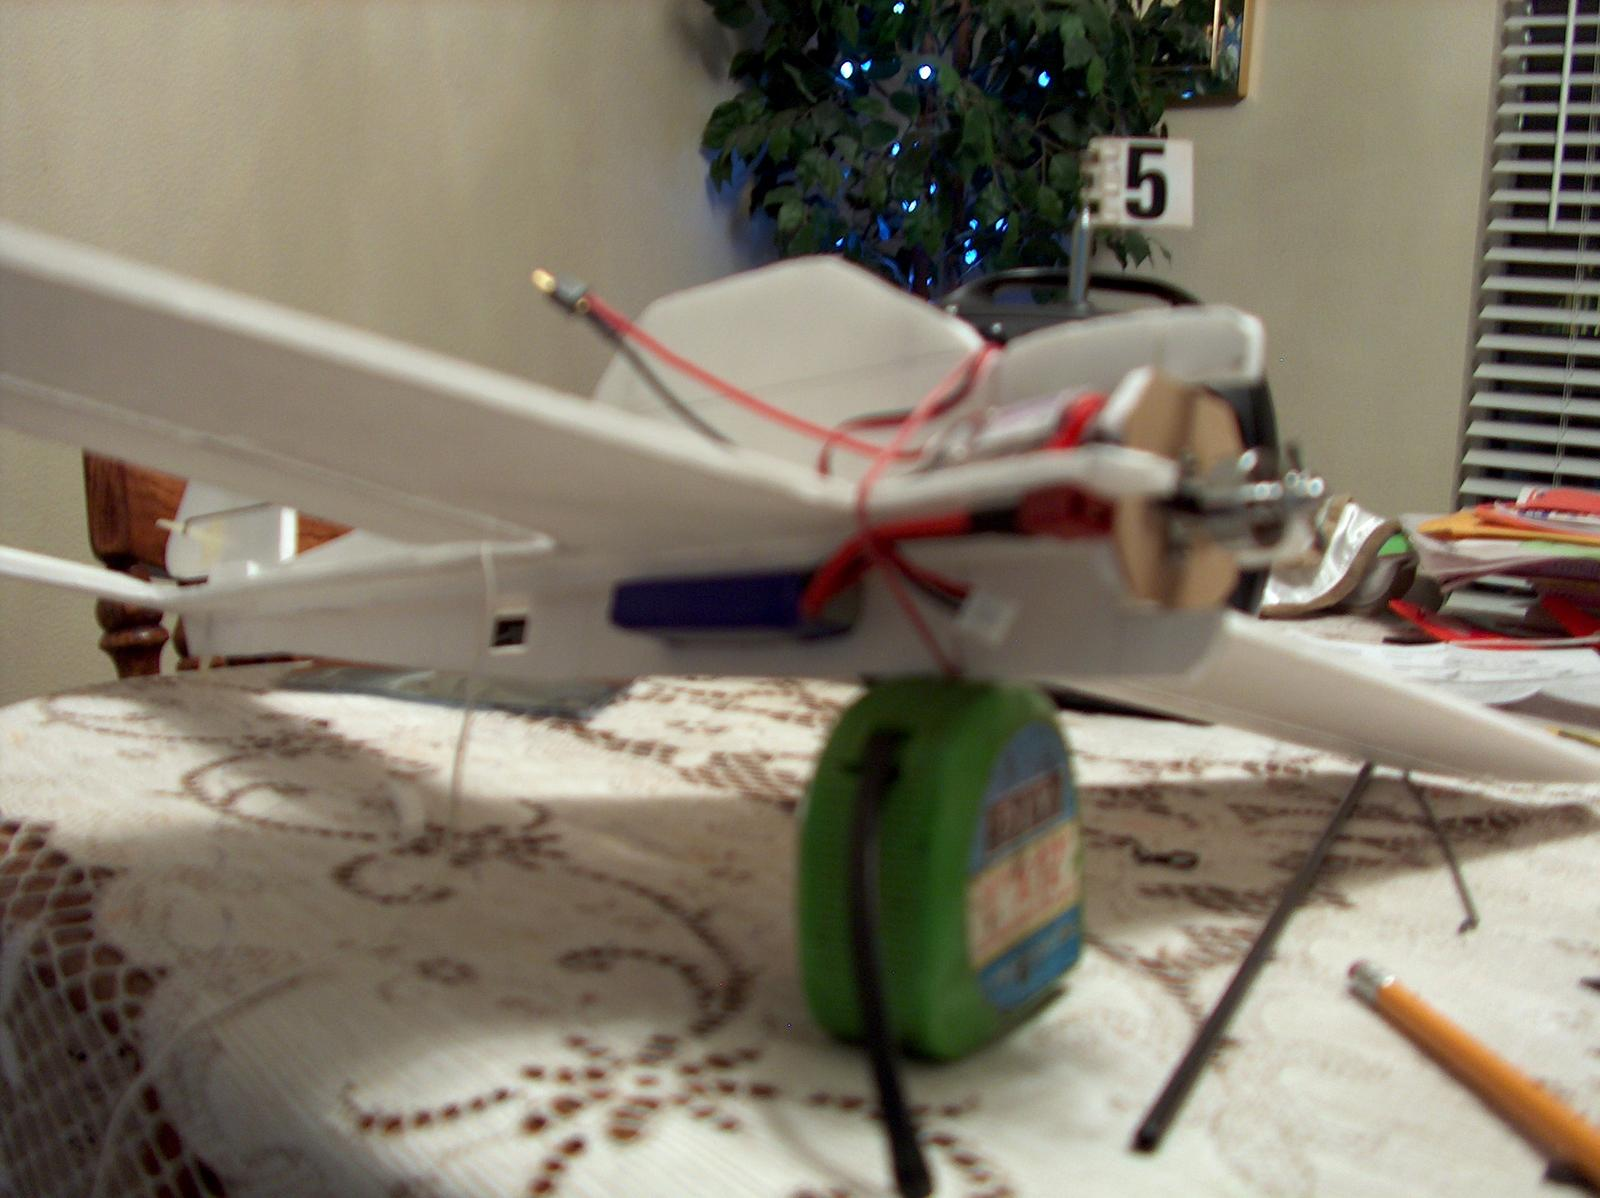 I located the battery underneath the wing for low center of gravity..cut out the foam and slid it in..